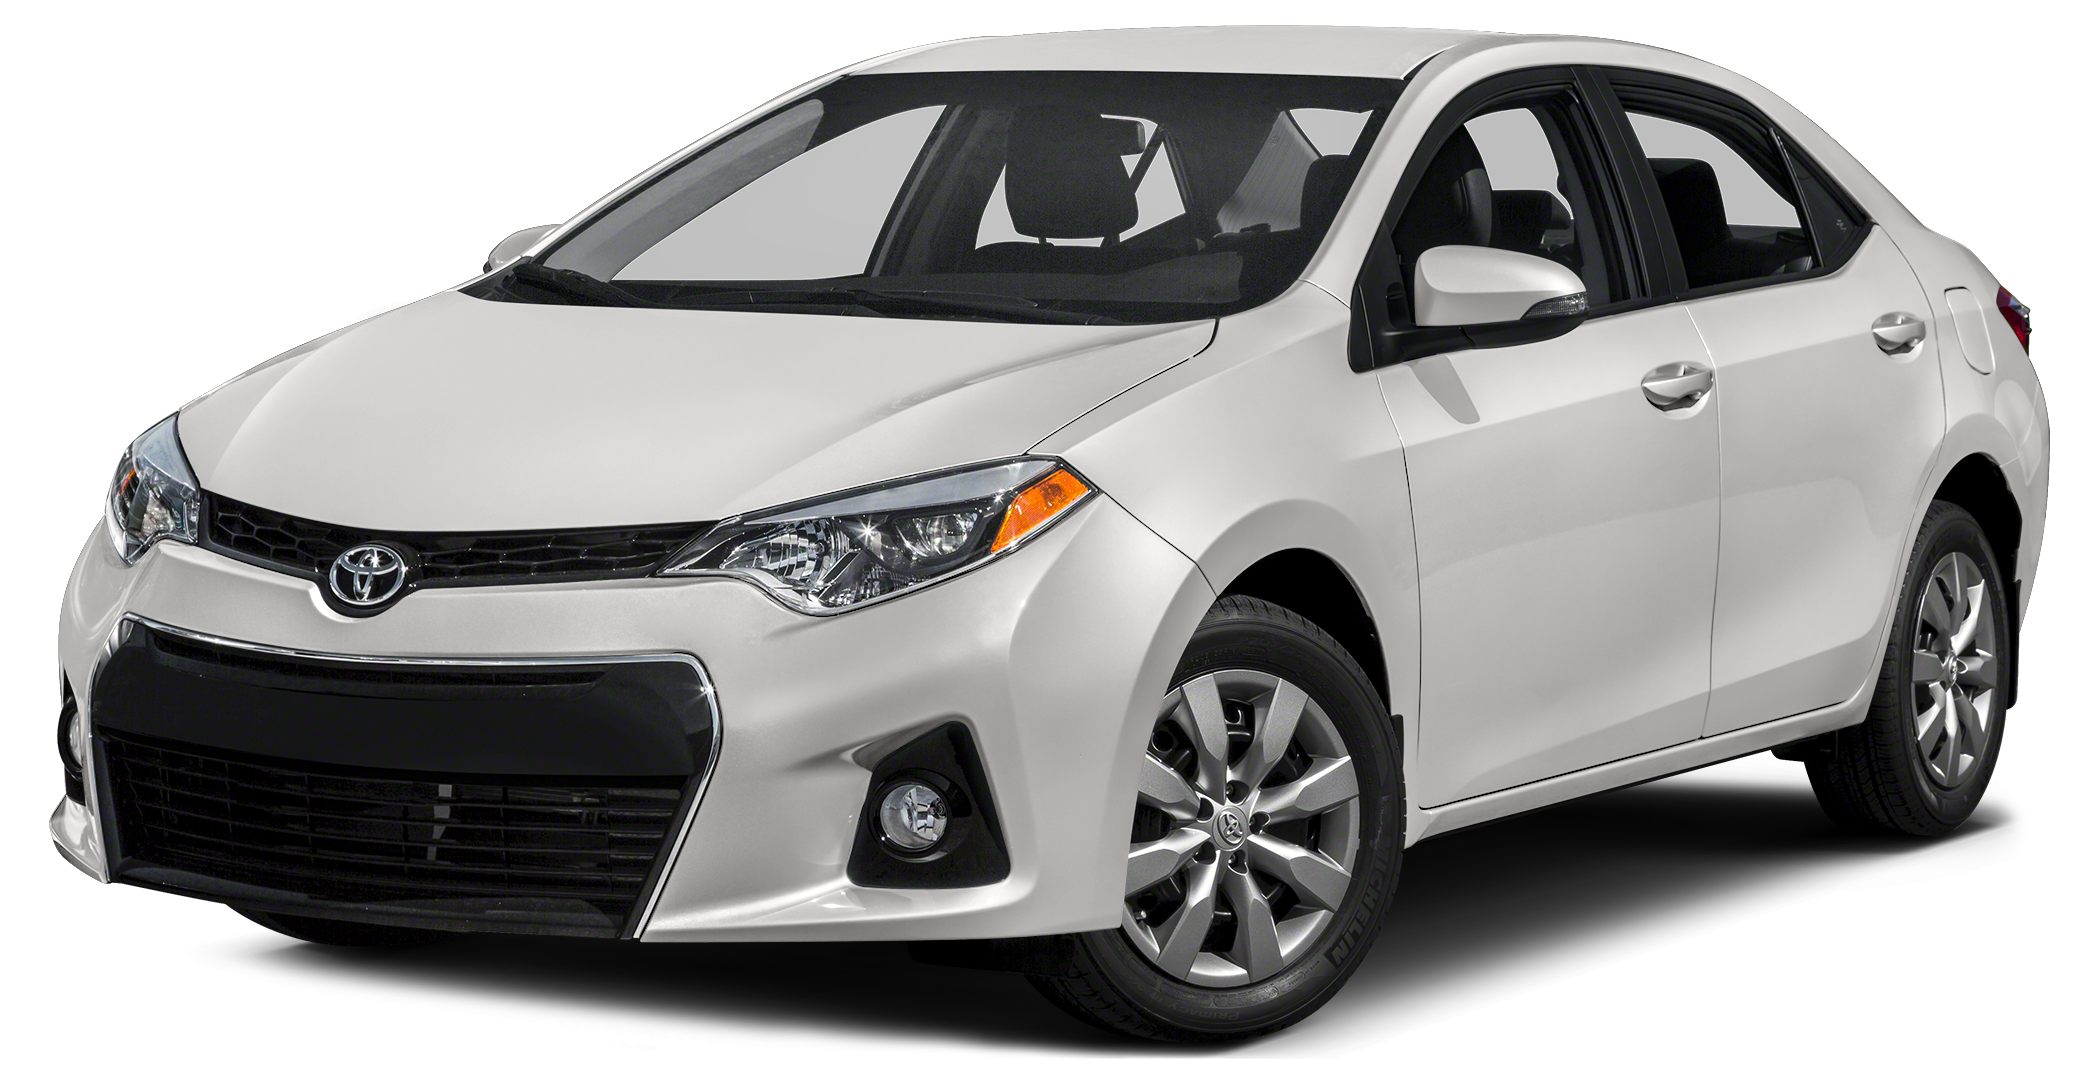 2015 Toyota Corolla S Plus SUPER WHITE exterior and BLACK interior EPA 37 MPG Hwy28 MPG City CA